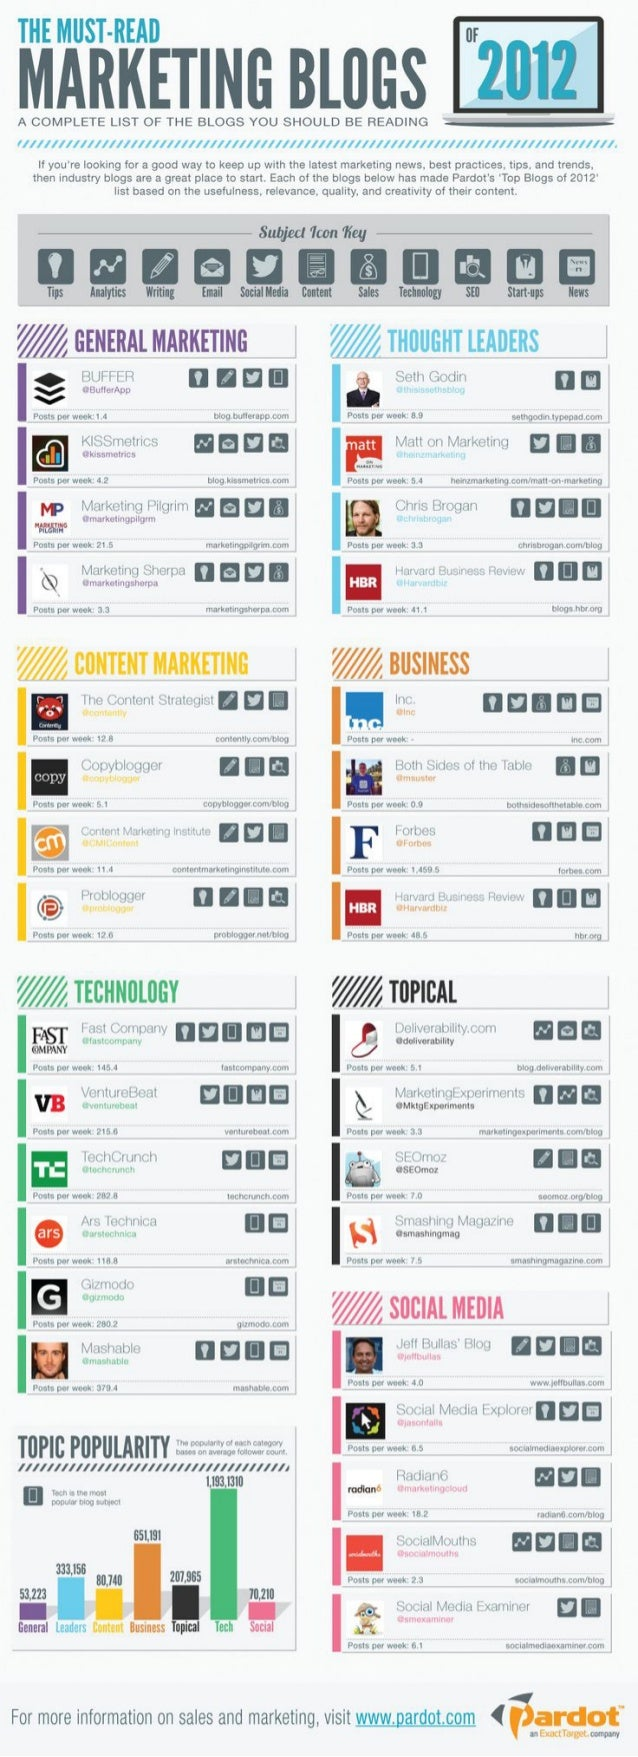 Must-Read Marketing Blogs [Infographic]